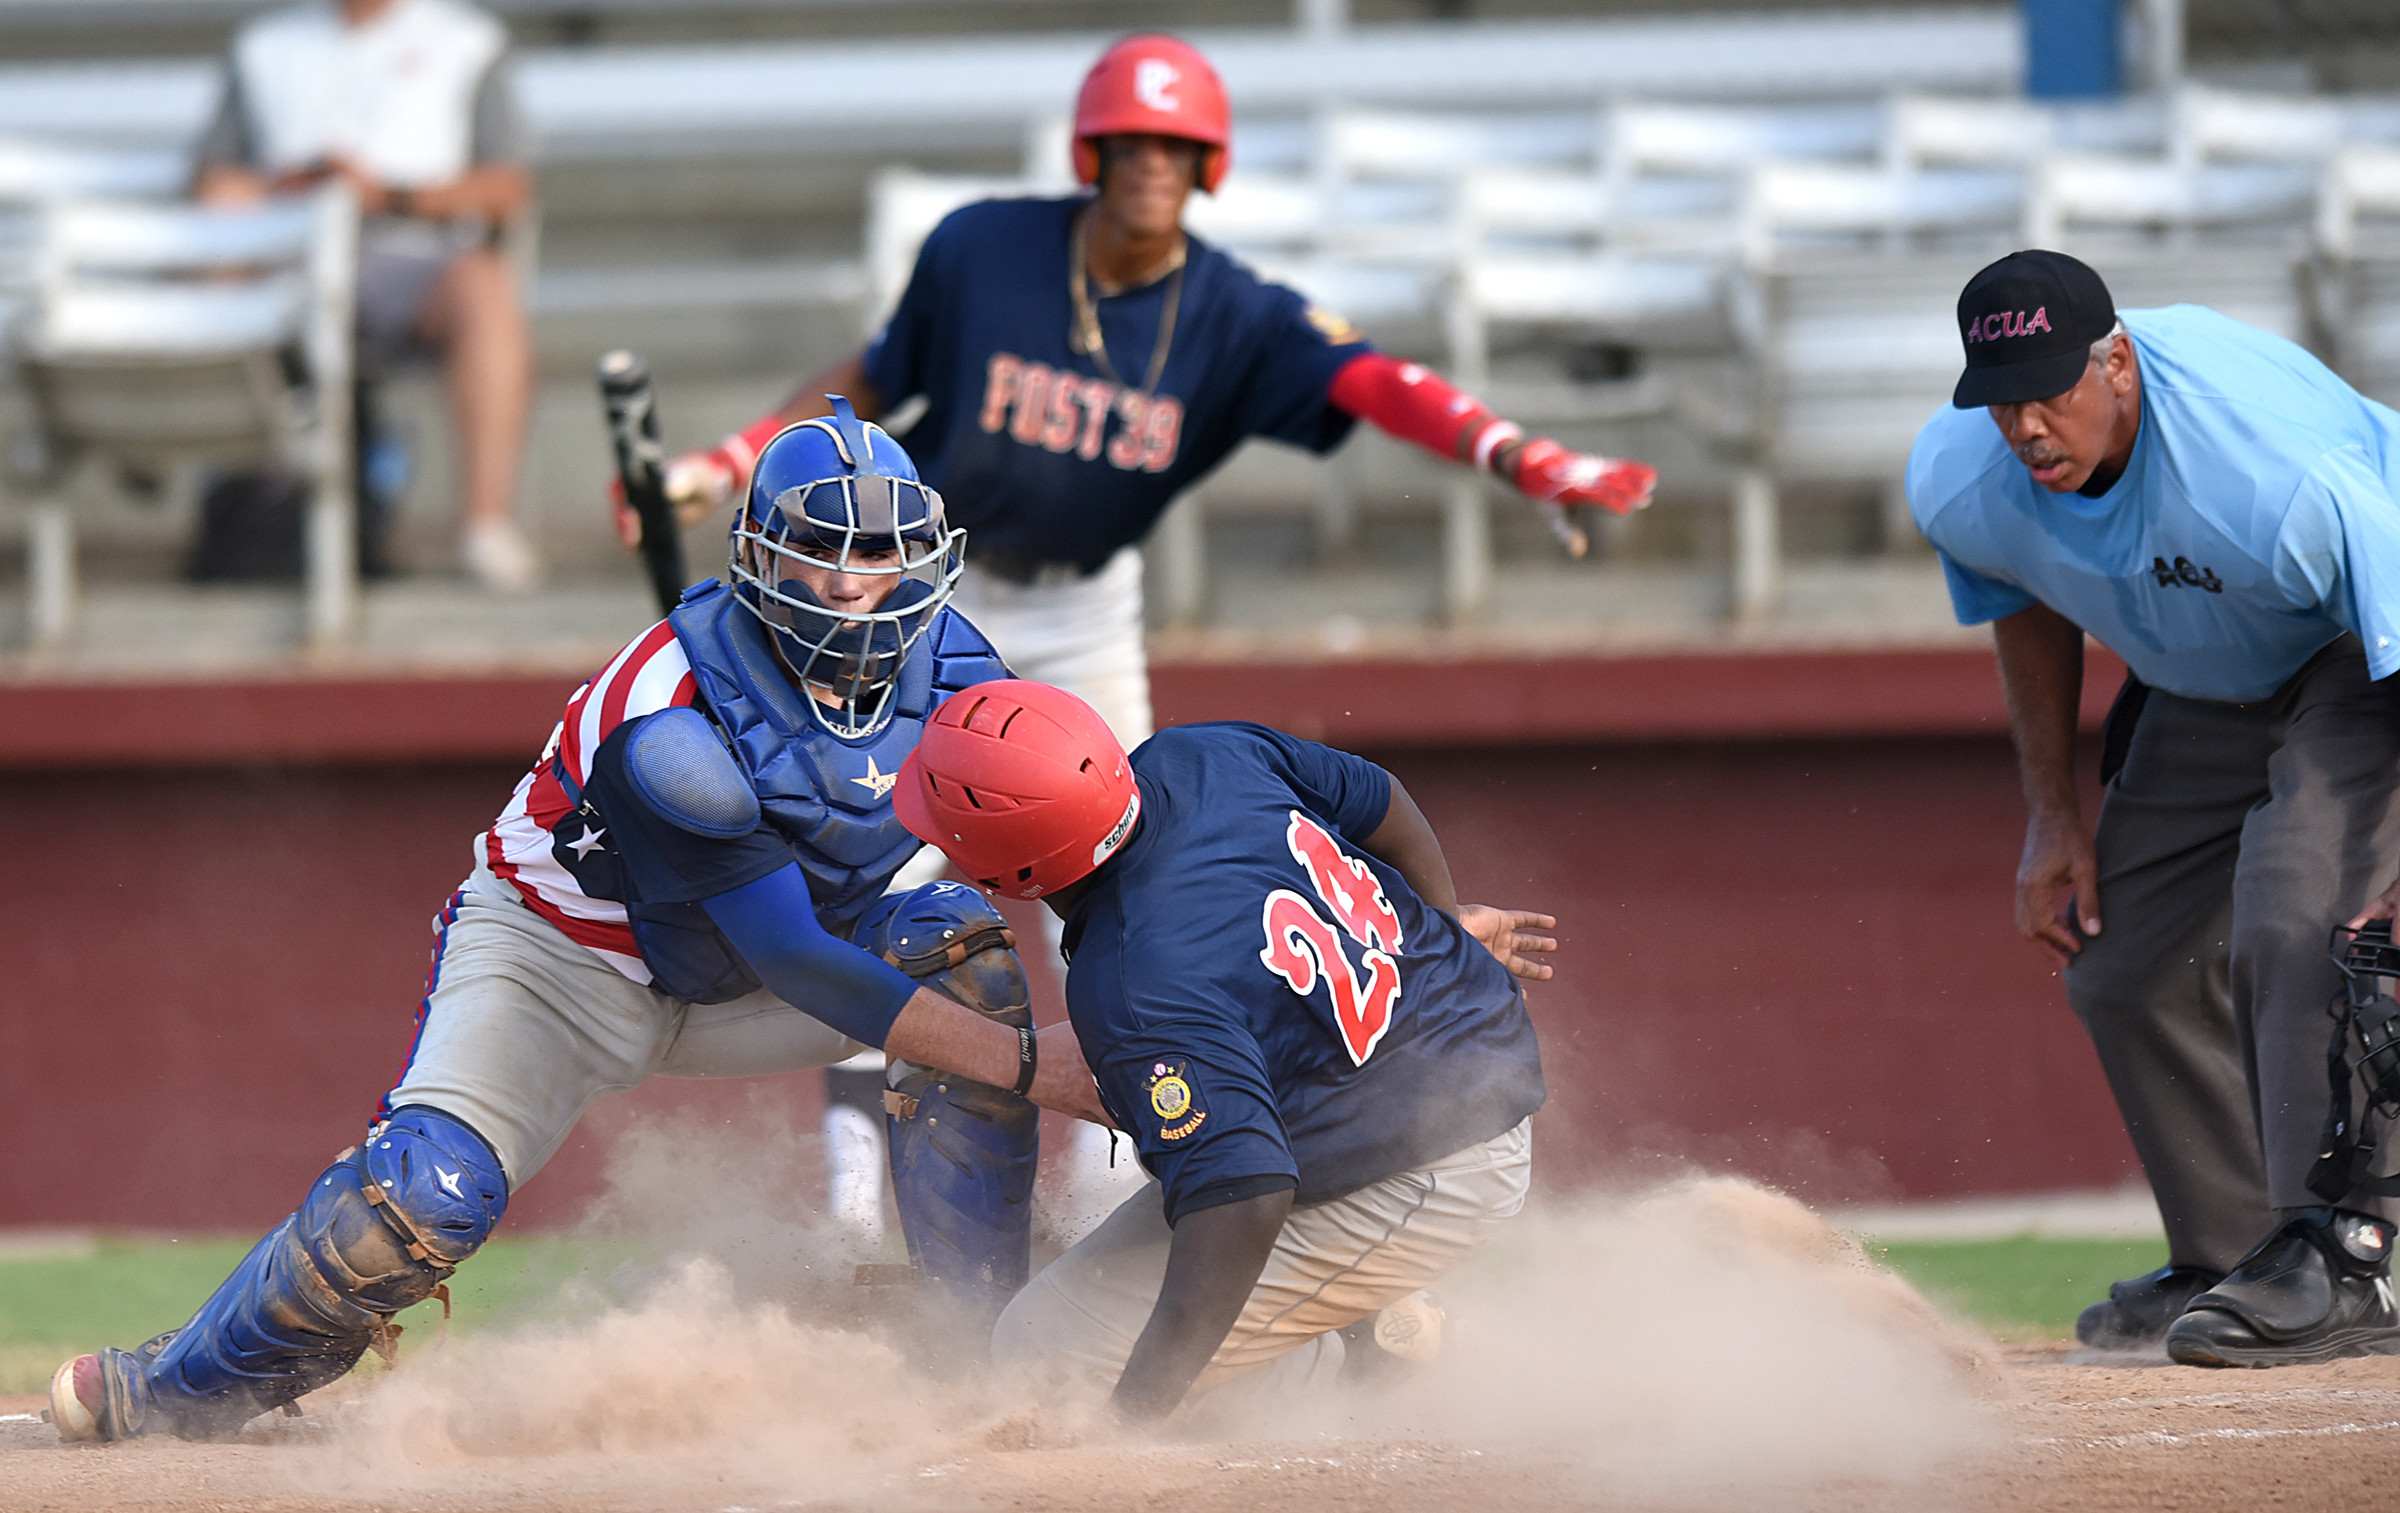 Ty'Shawn Barret (24) of Pitt County, N.C., is tagged out at home plate by Sumter catcher Cory Blackley in the P-15's 9-3 loss on Sunday in the North/South Tournament of Champions.